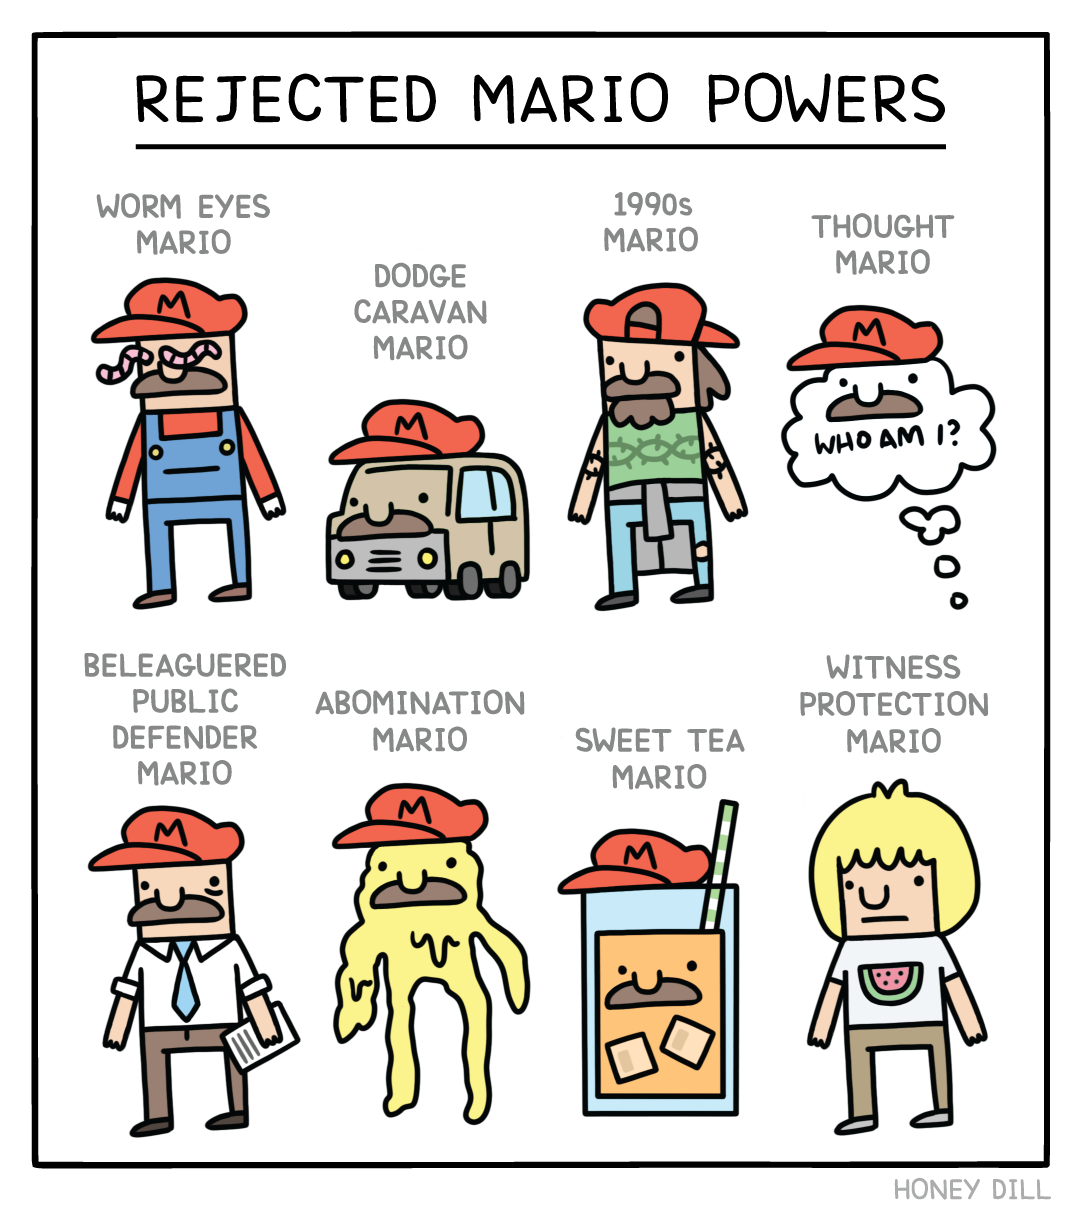 rejectedmario_IG_01v3.png